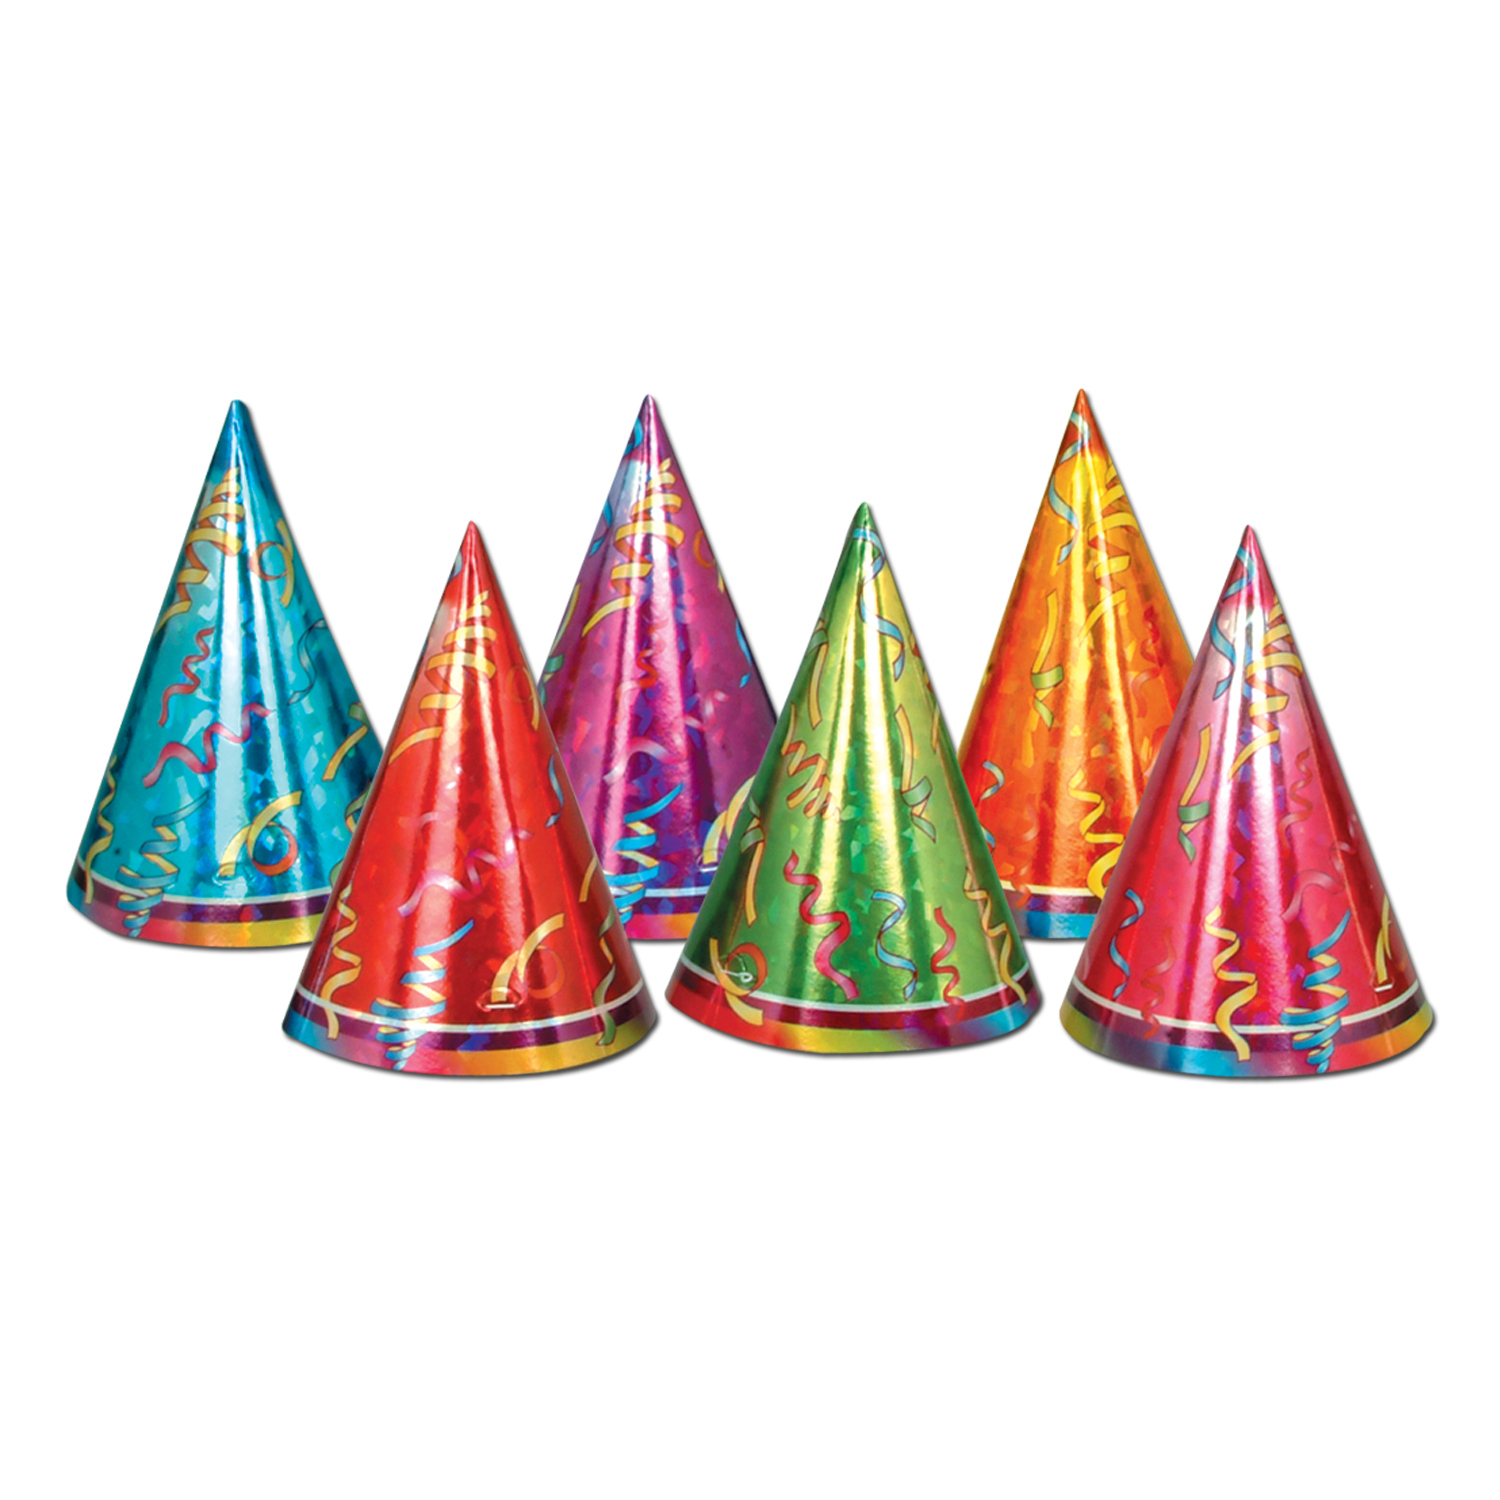 Prismatic Cone Hats (Pack of 72) Cone Hats, Prismatic Hats, Assorted Hats, Cheap hats, Party hats, Wholesale party supplies, Inexpensive decorations, Birthday ideas, Birthday hats